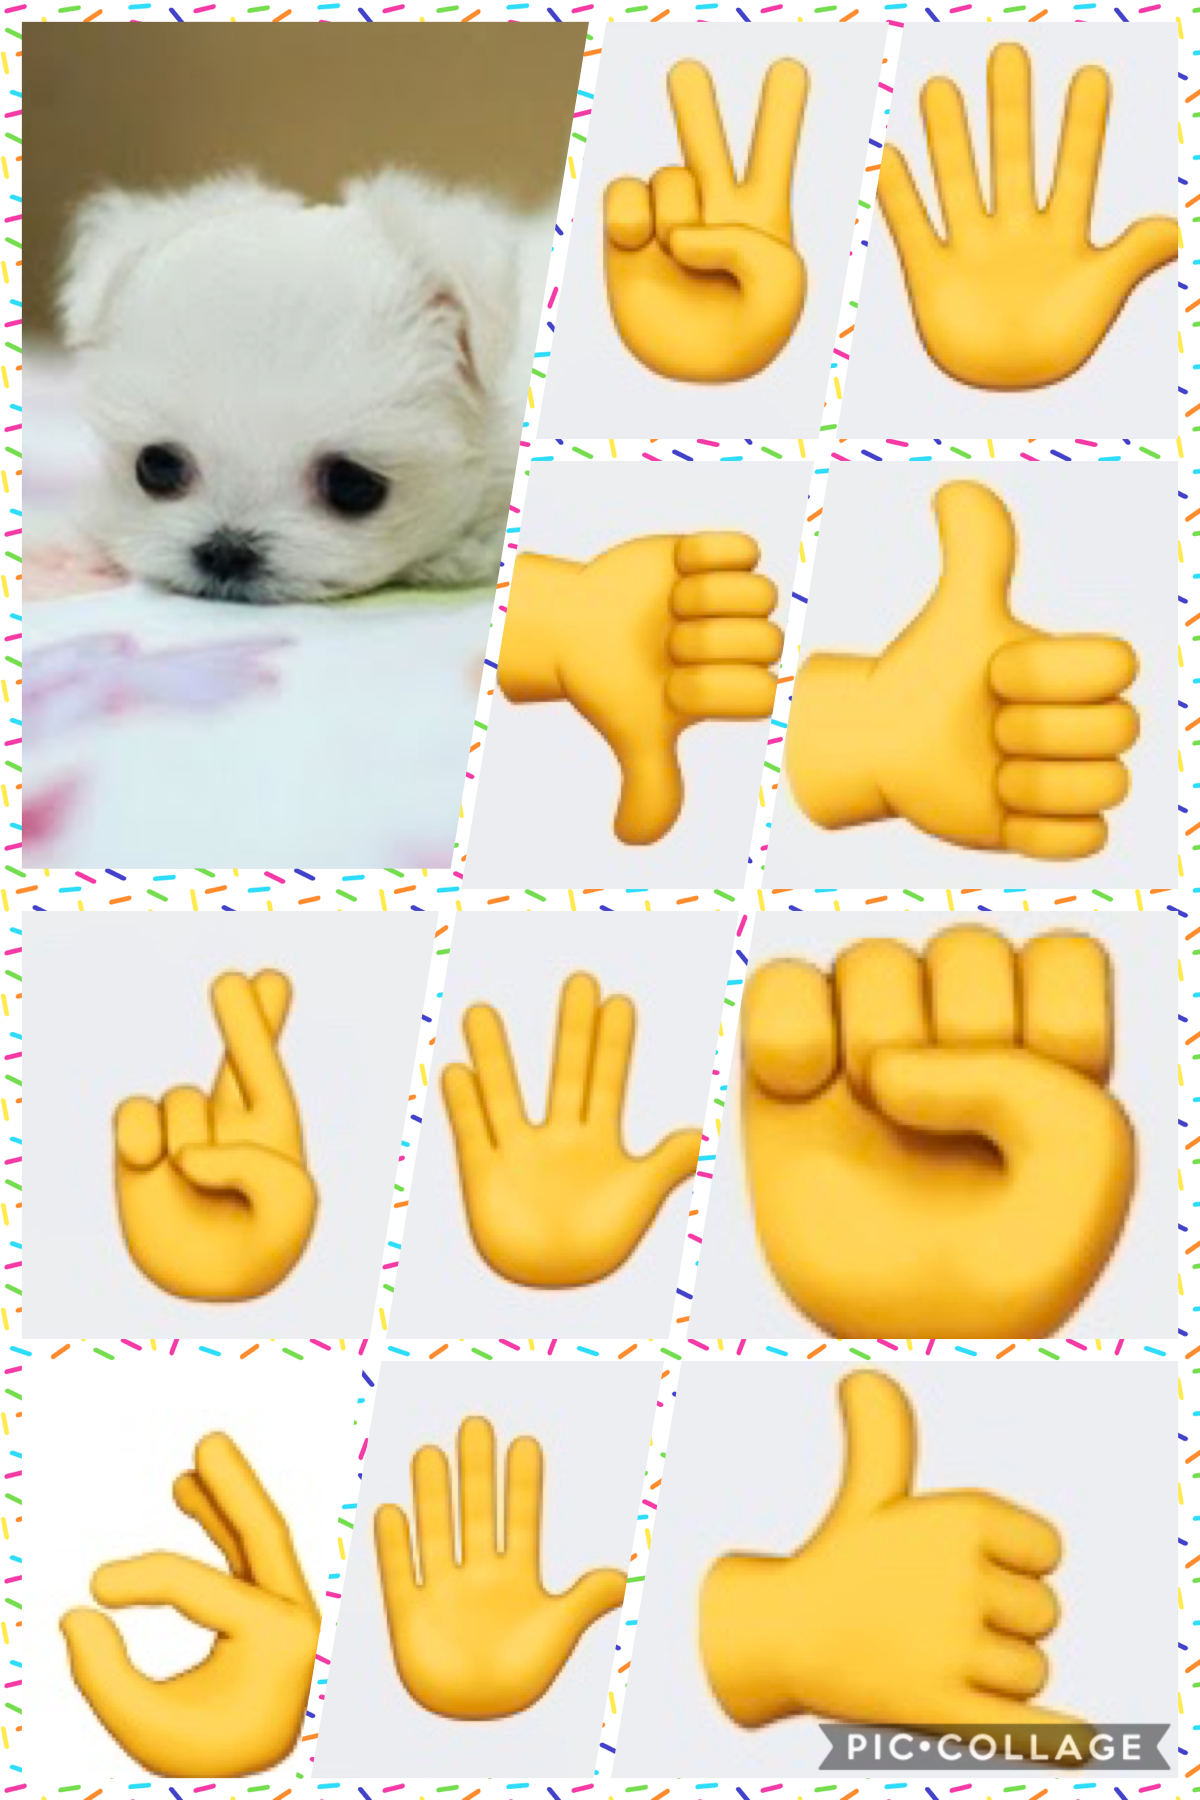 I love hand signs and cute tiny dogs!